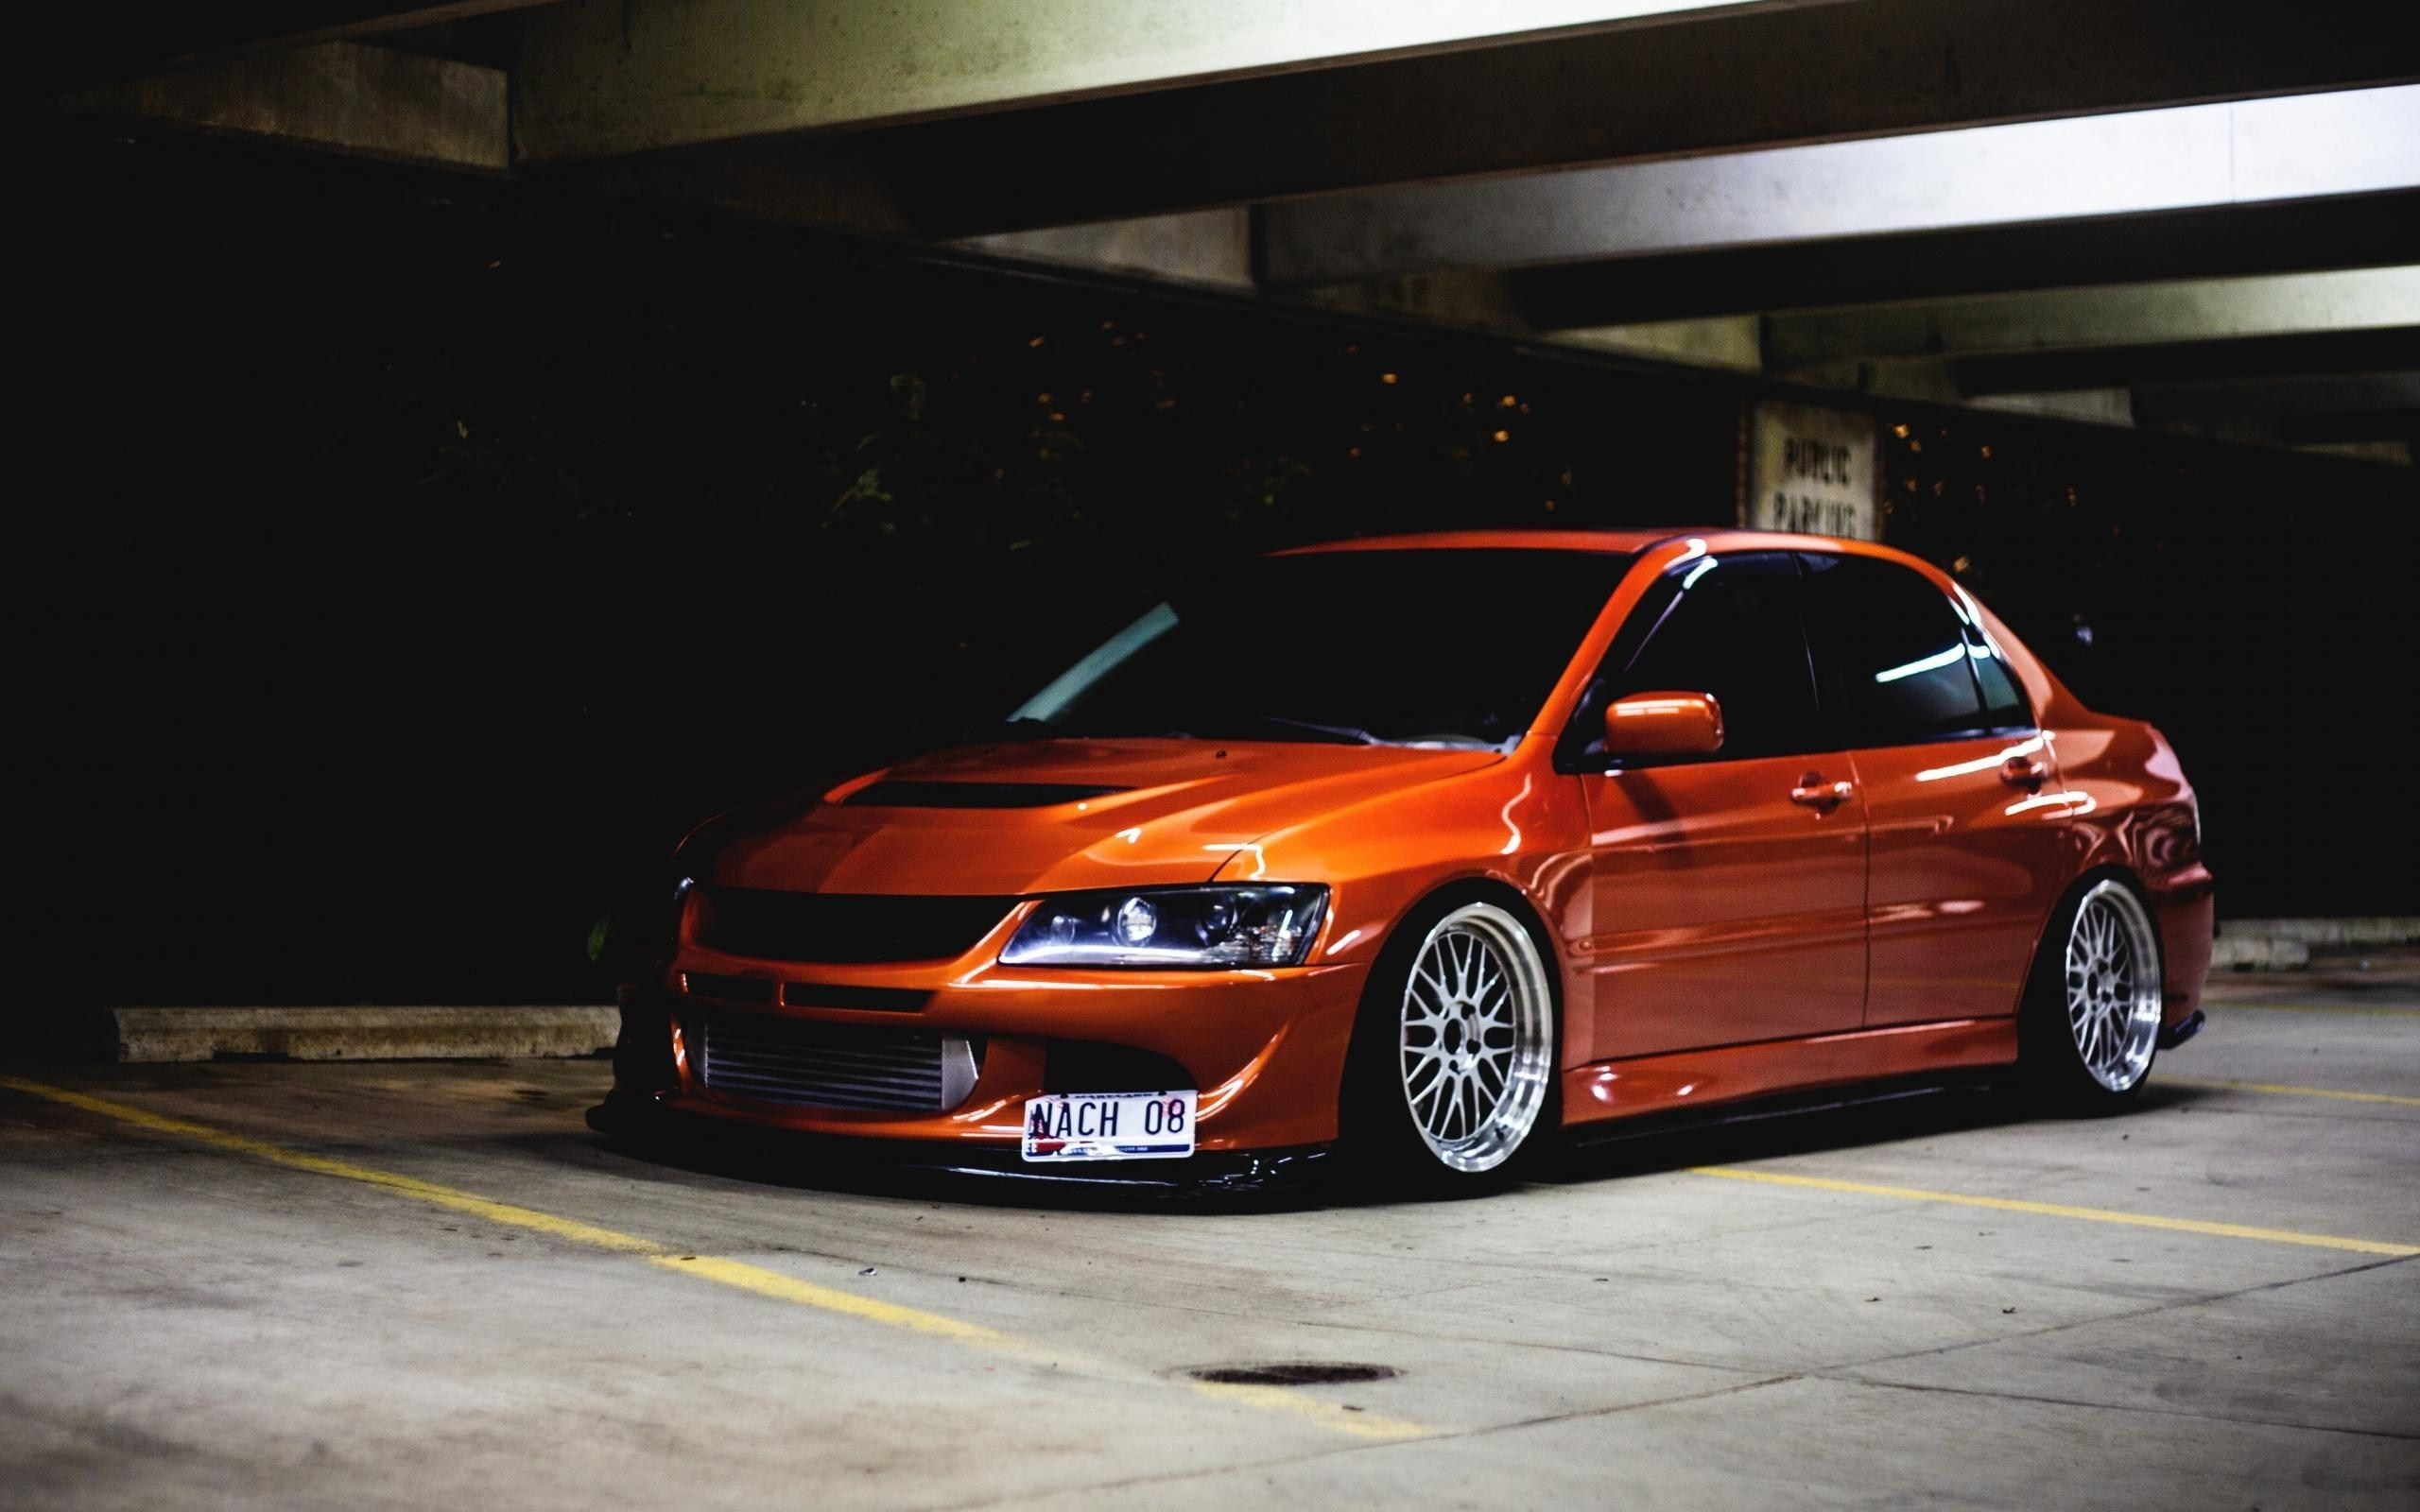 Res: 2560x1600, 29 Mitsubishi Evolution VIII HD Wallpapers | Backgrounds